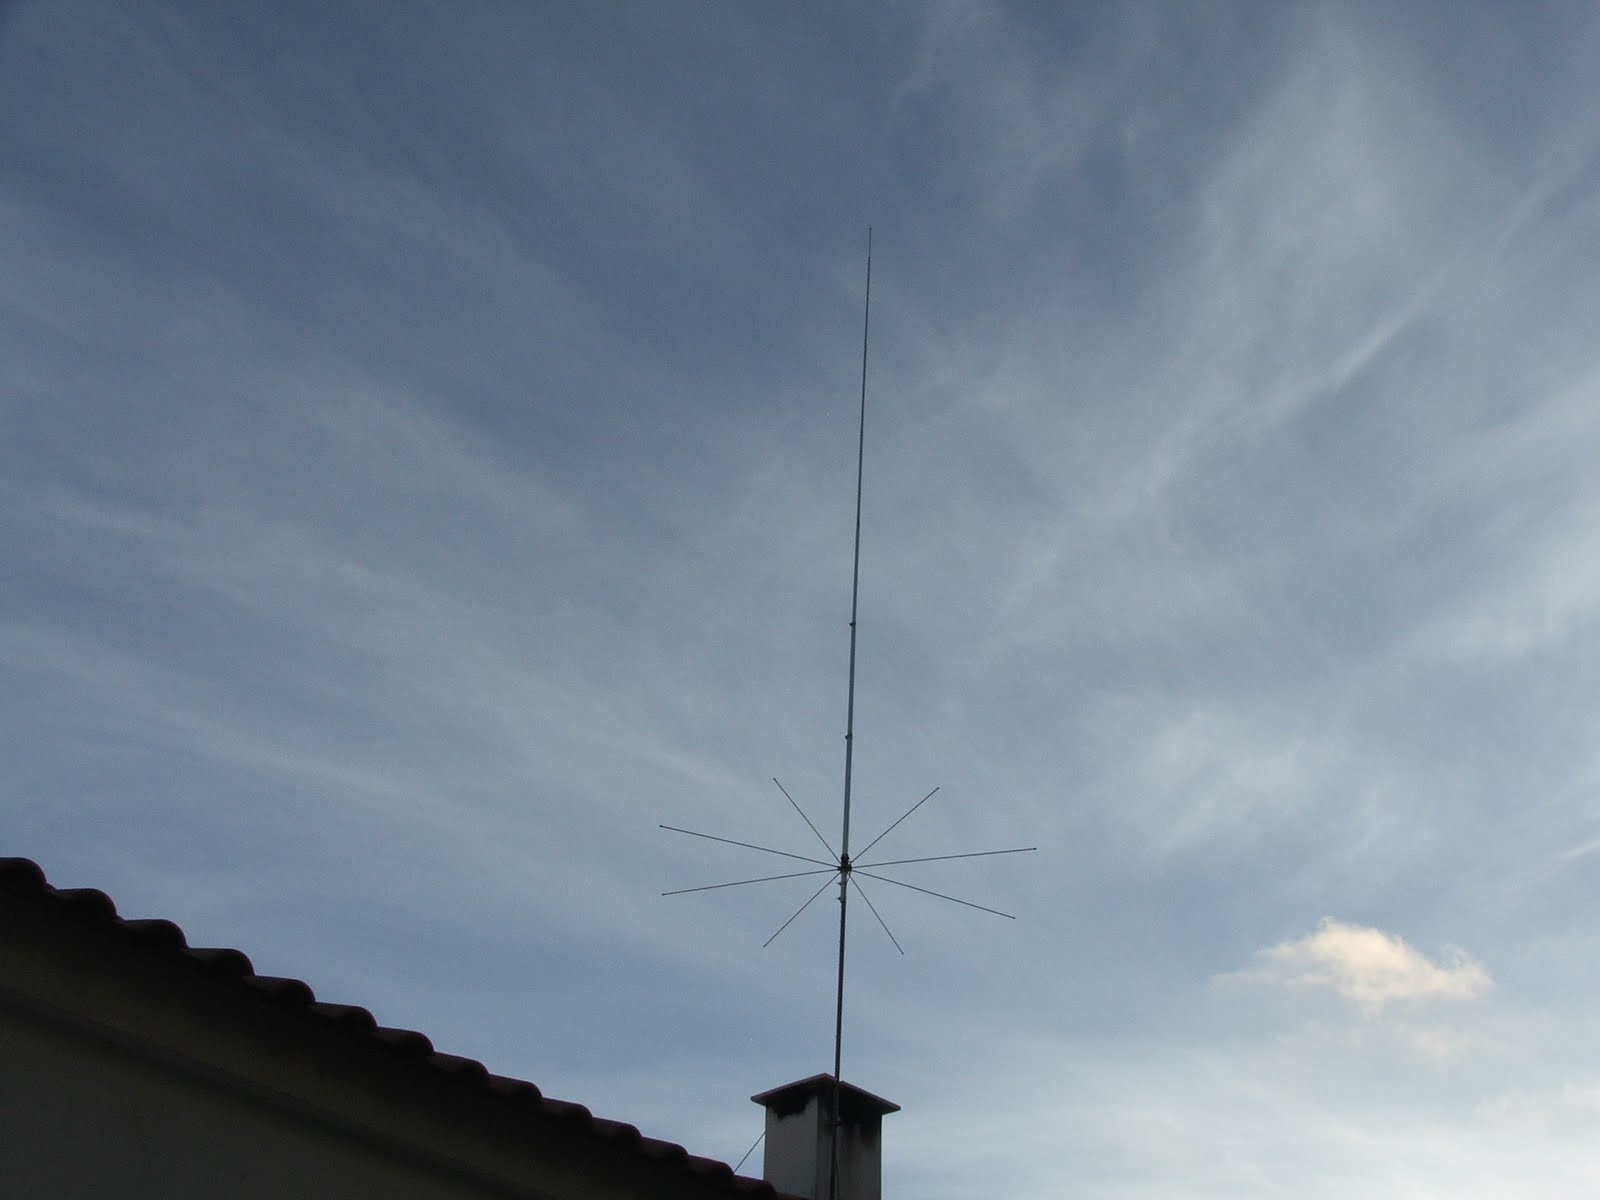 Sirio 827 (26.4 - 28.4 Mhz) 10M-HAM 3000W Tunable Base Antenna